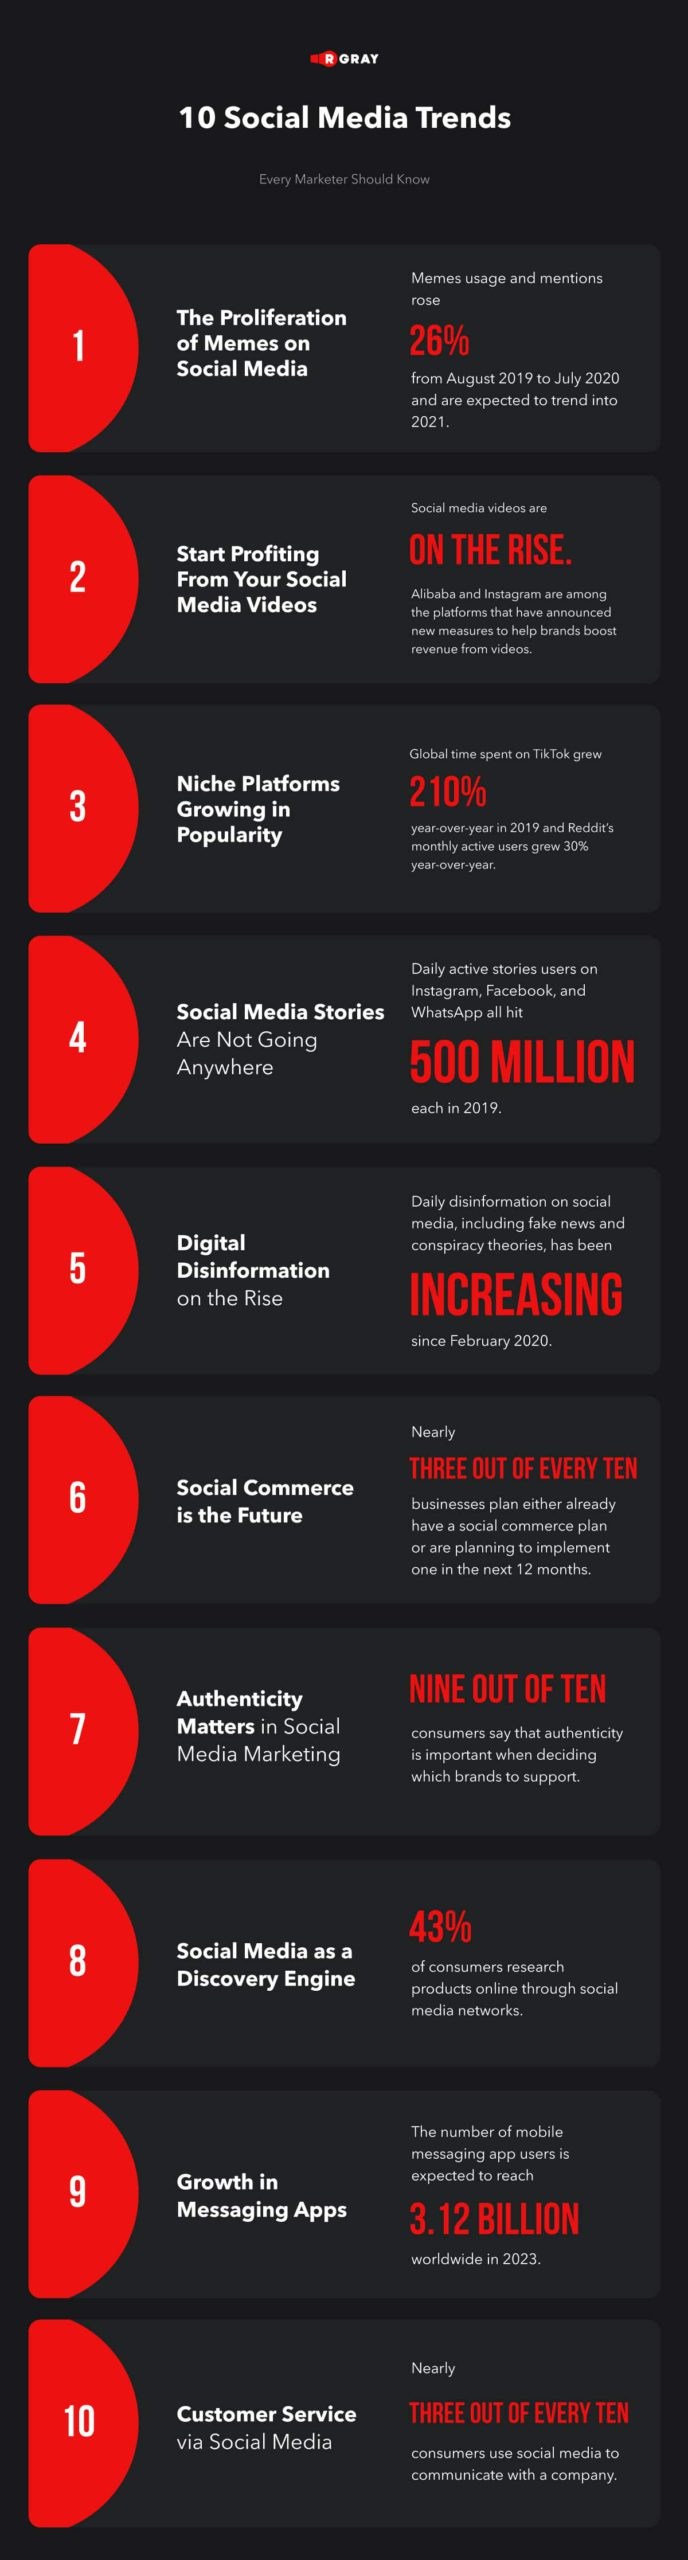 10 social media trends that every marketer should know in 2021